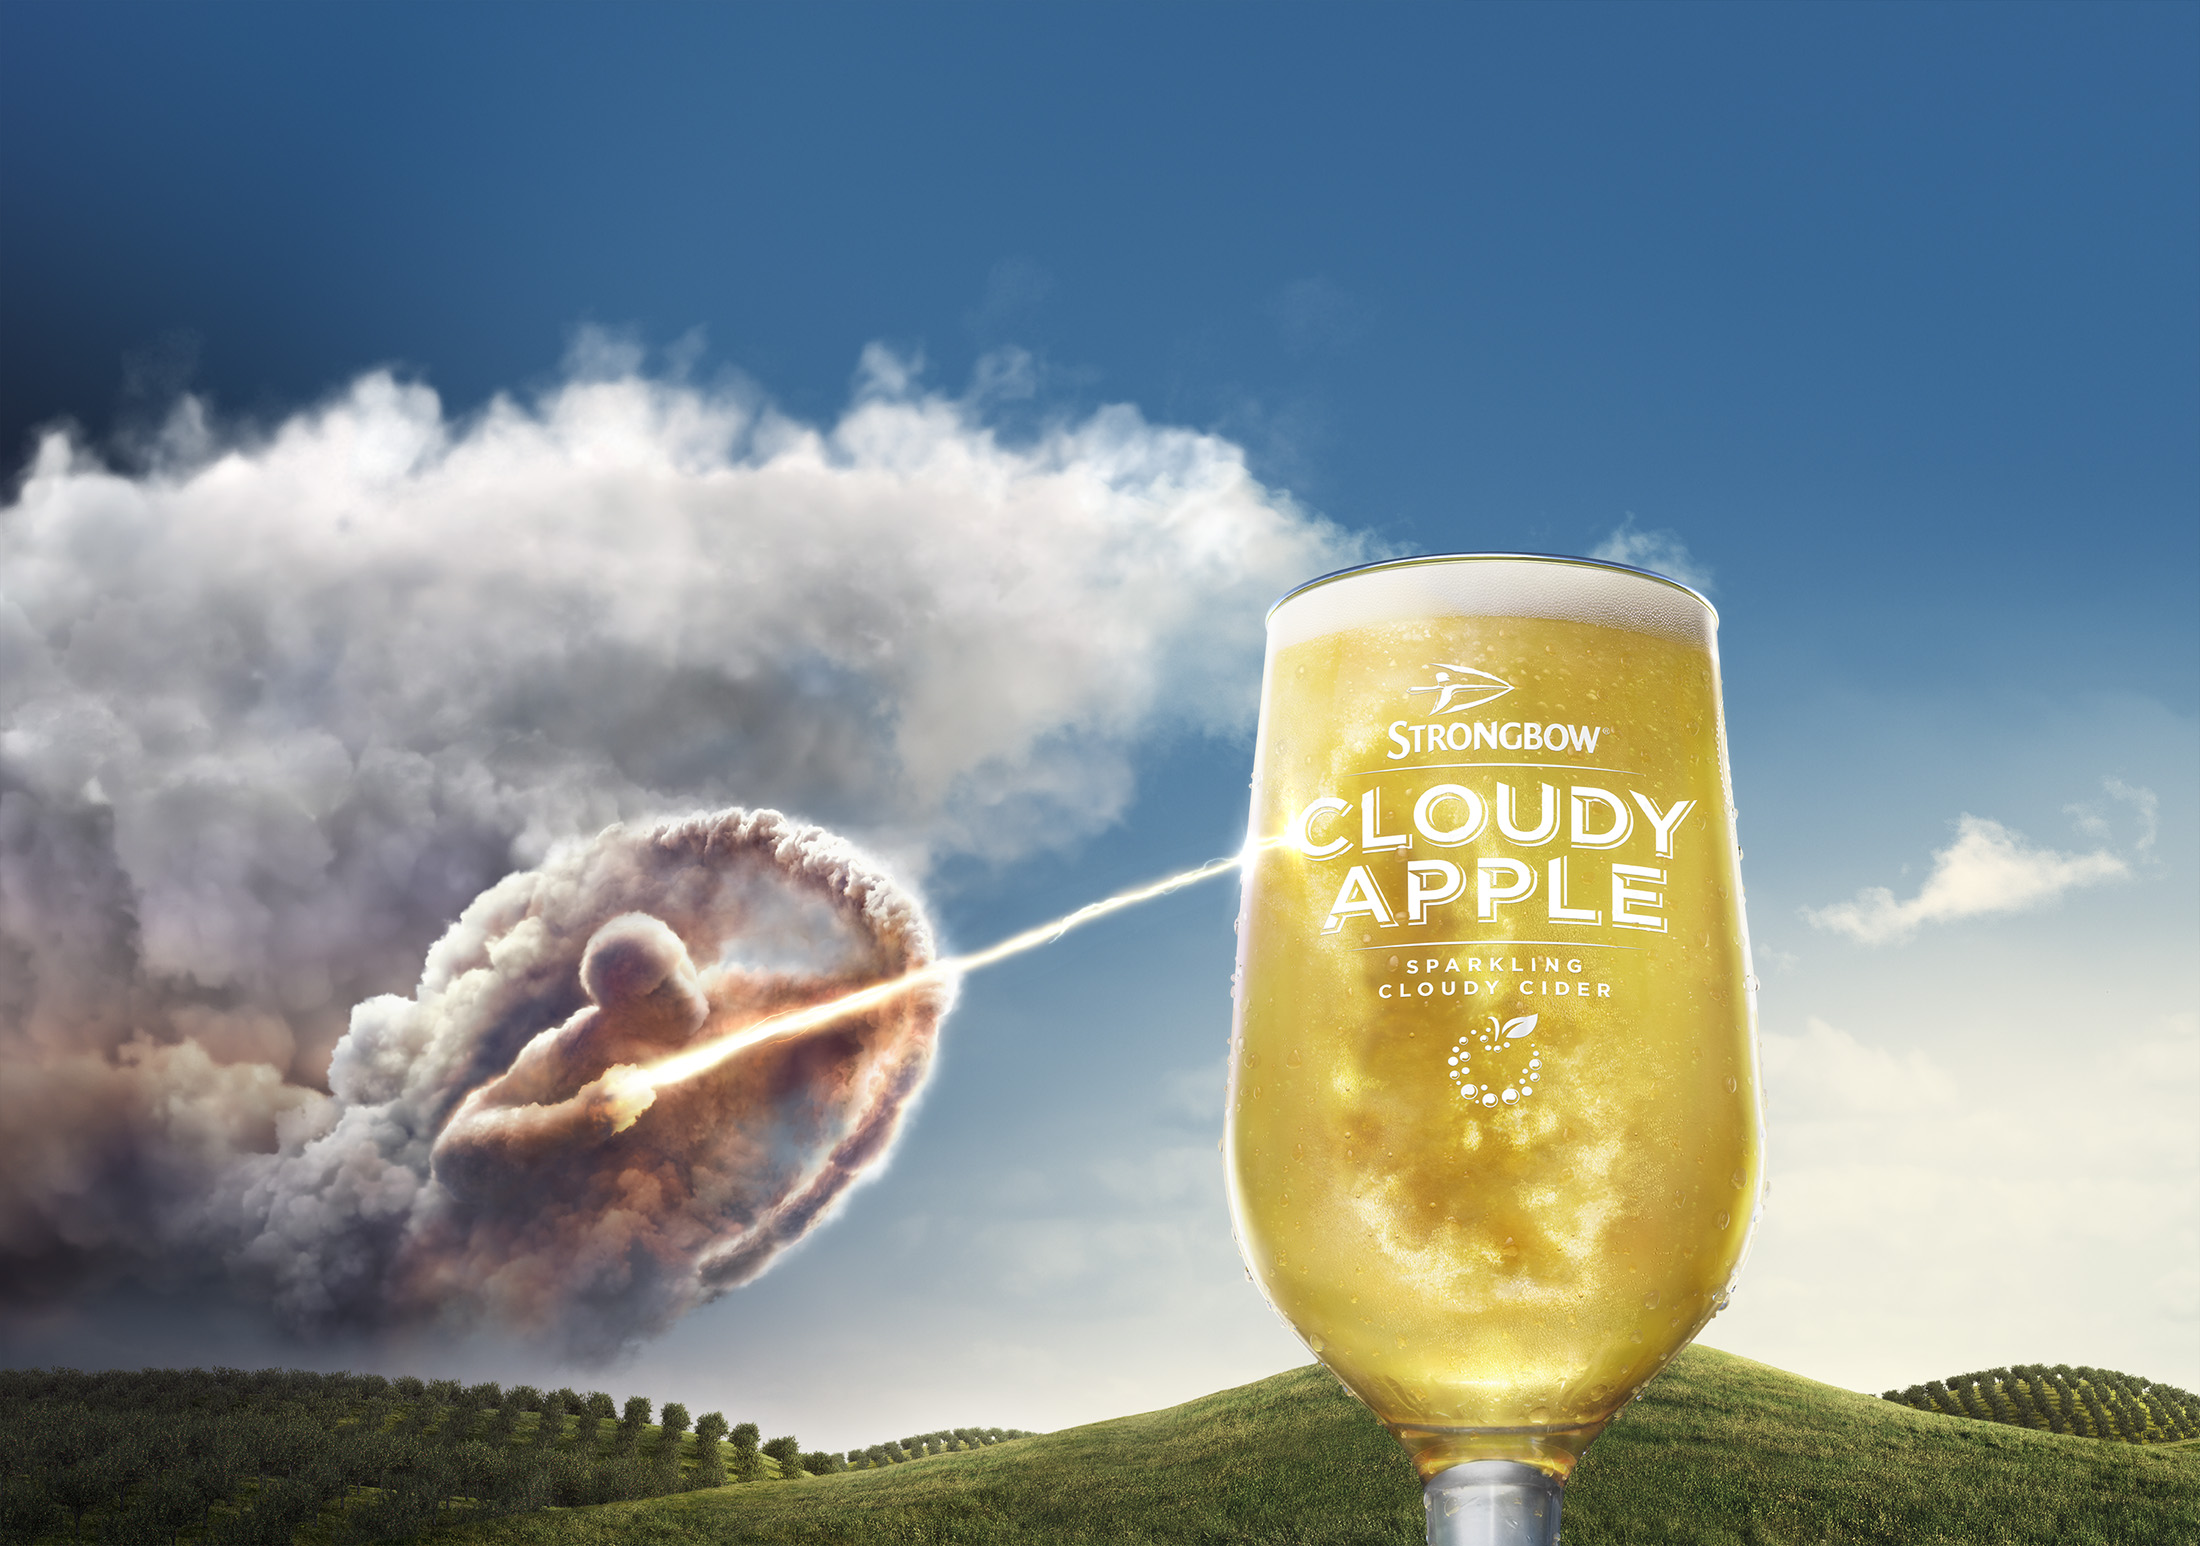 Strongbow Cloudy Apple thumbnail